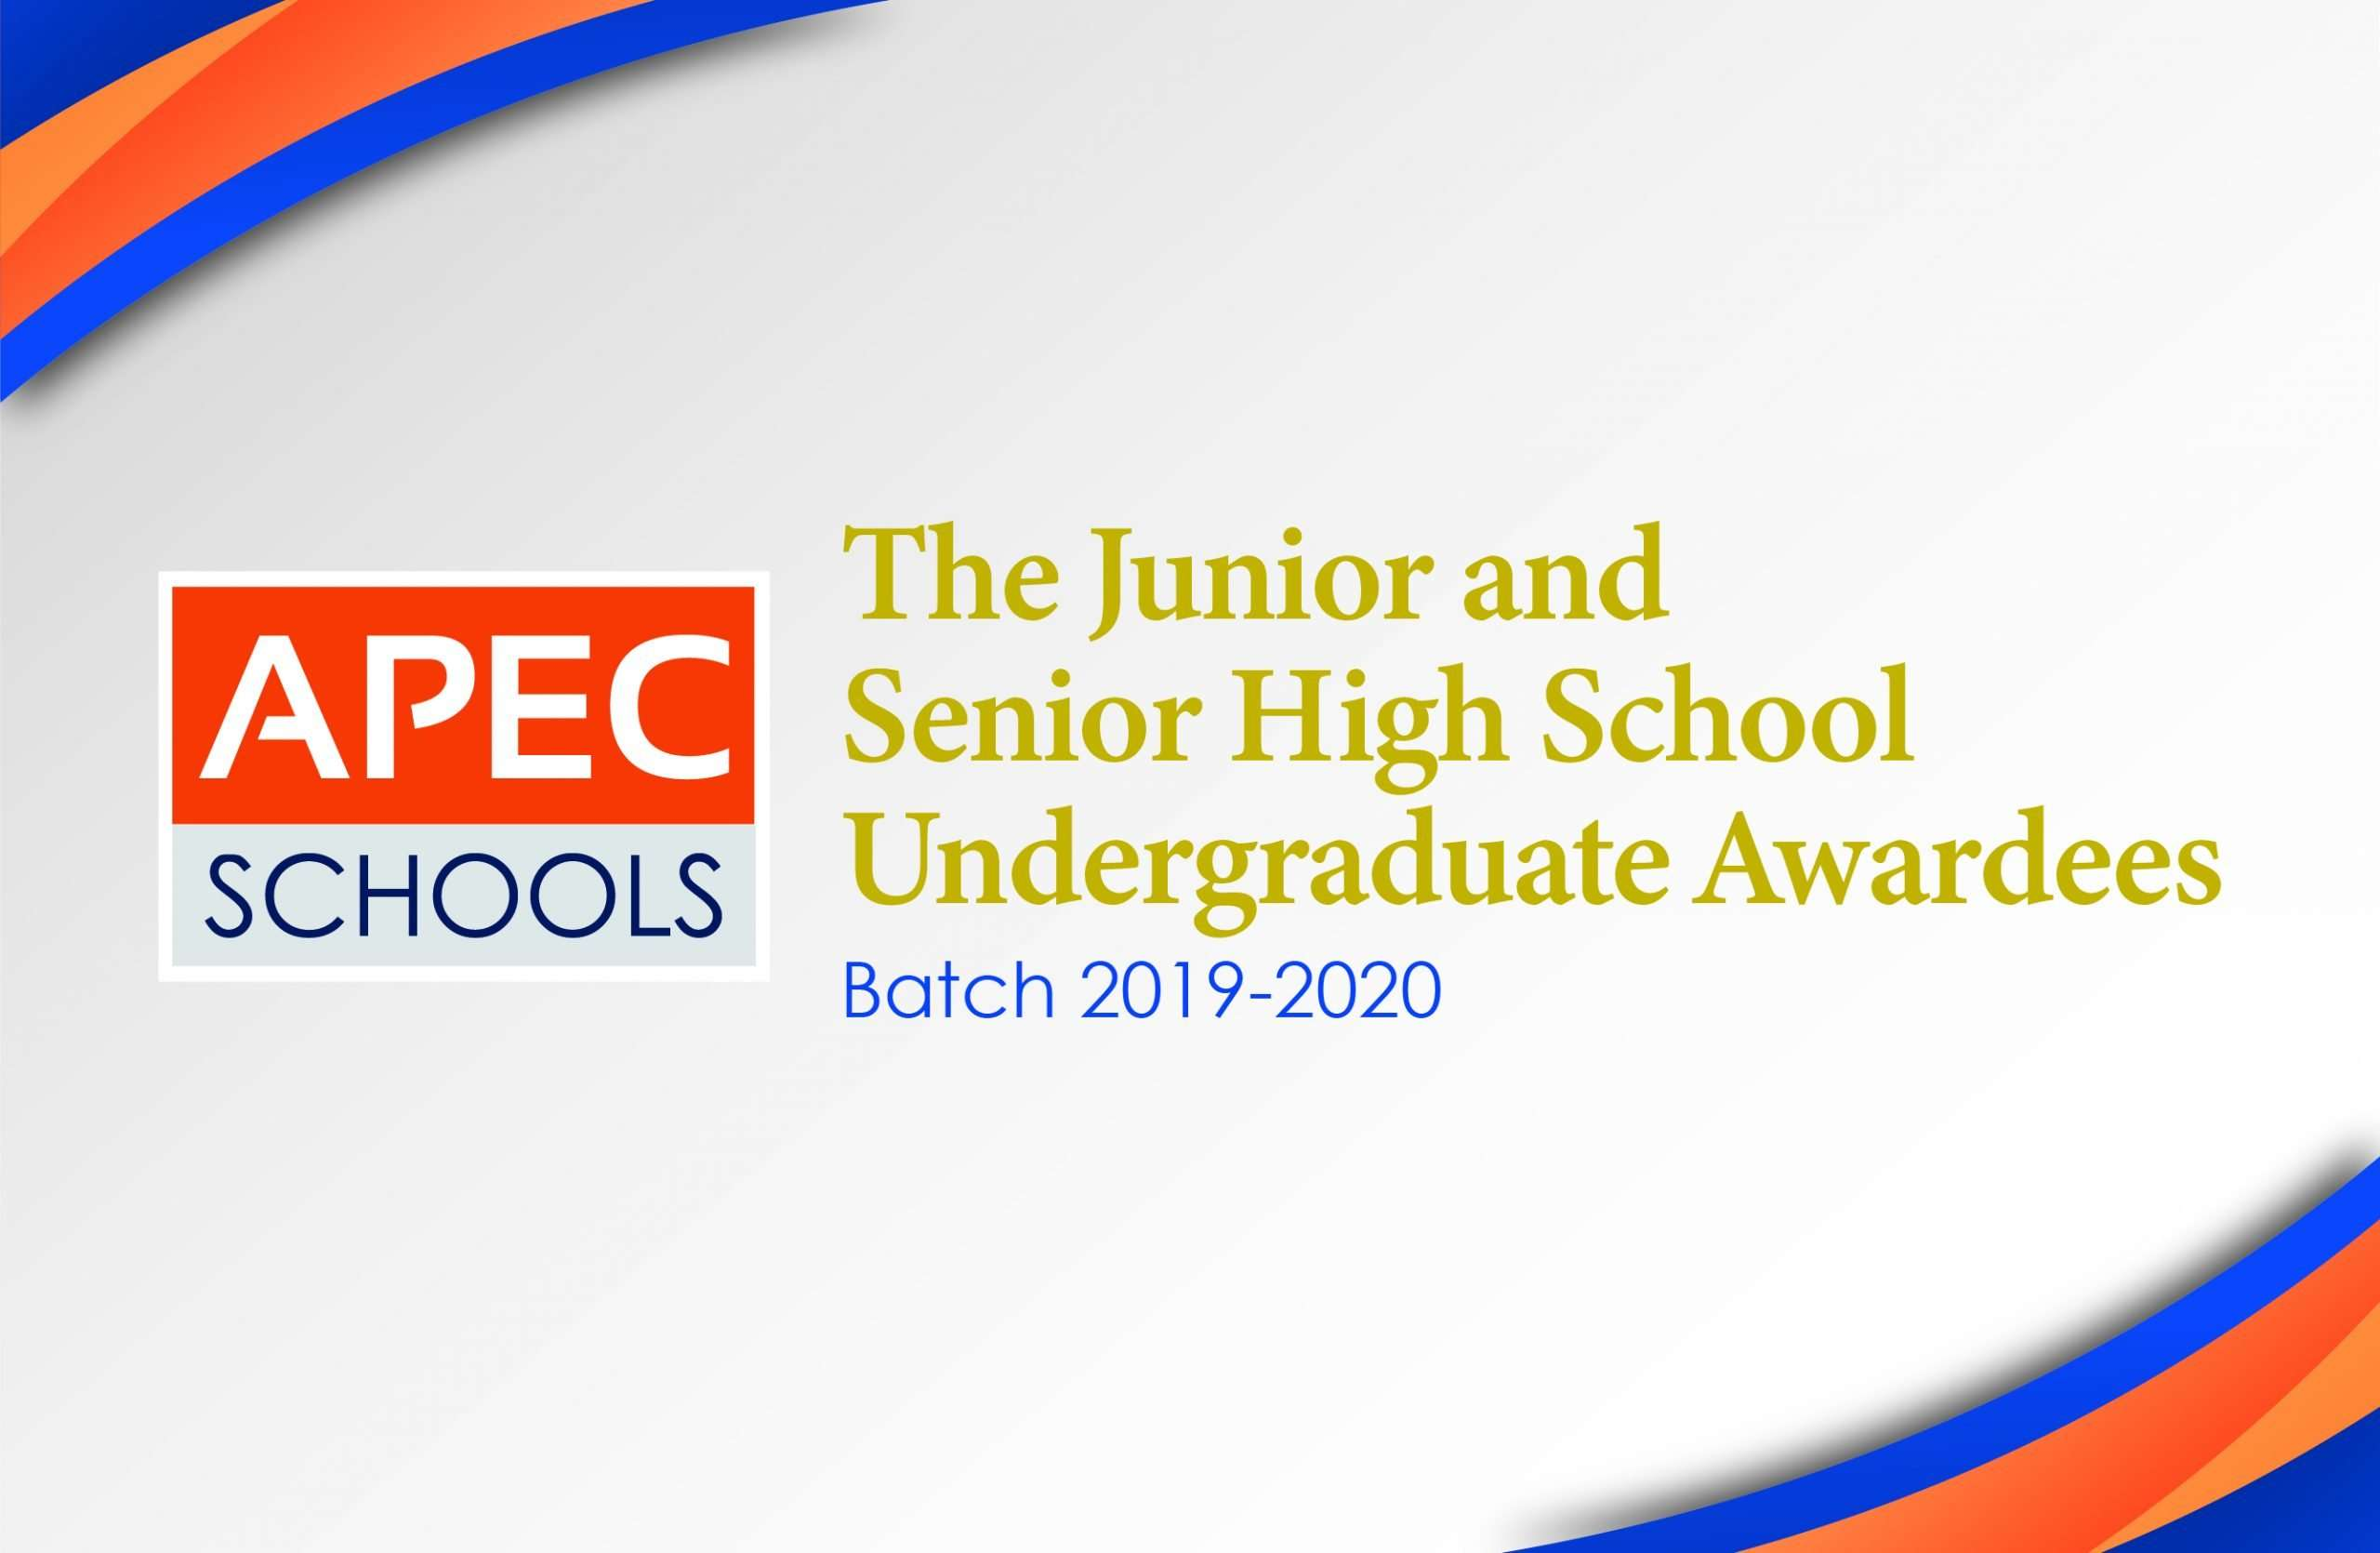 The Junior and Senior High School Undergraduate Awardees